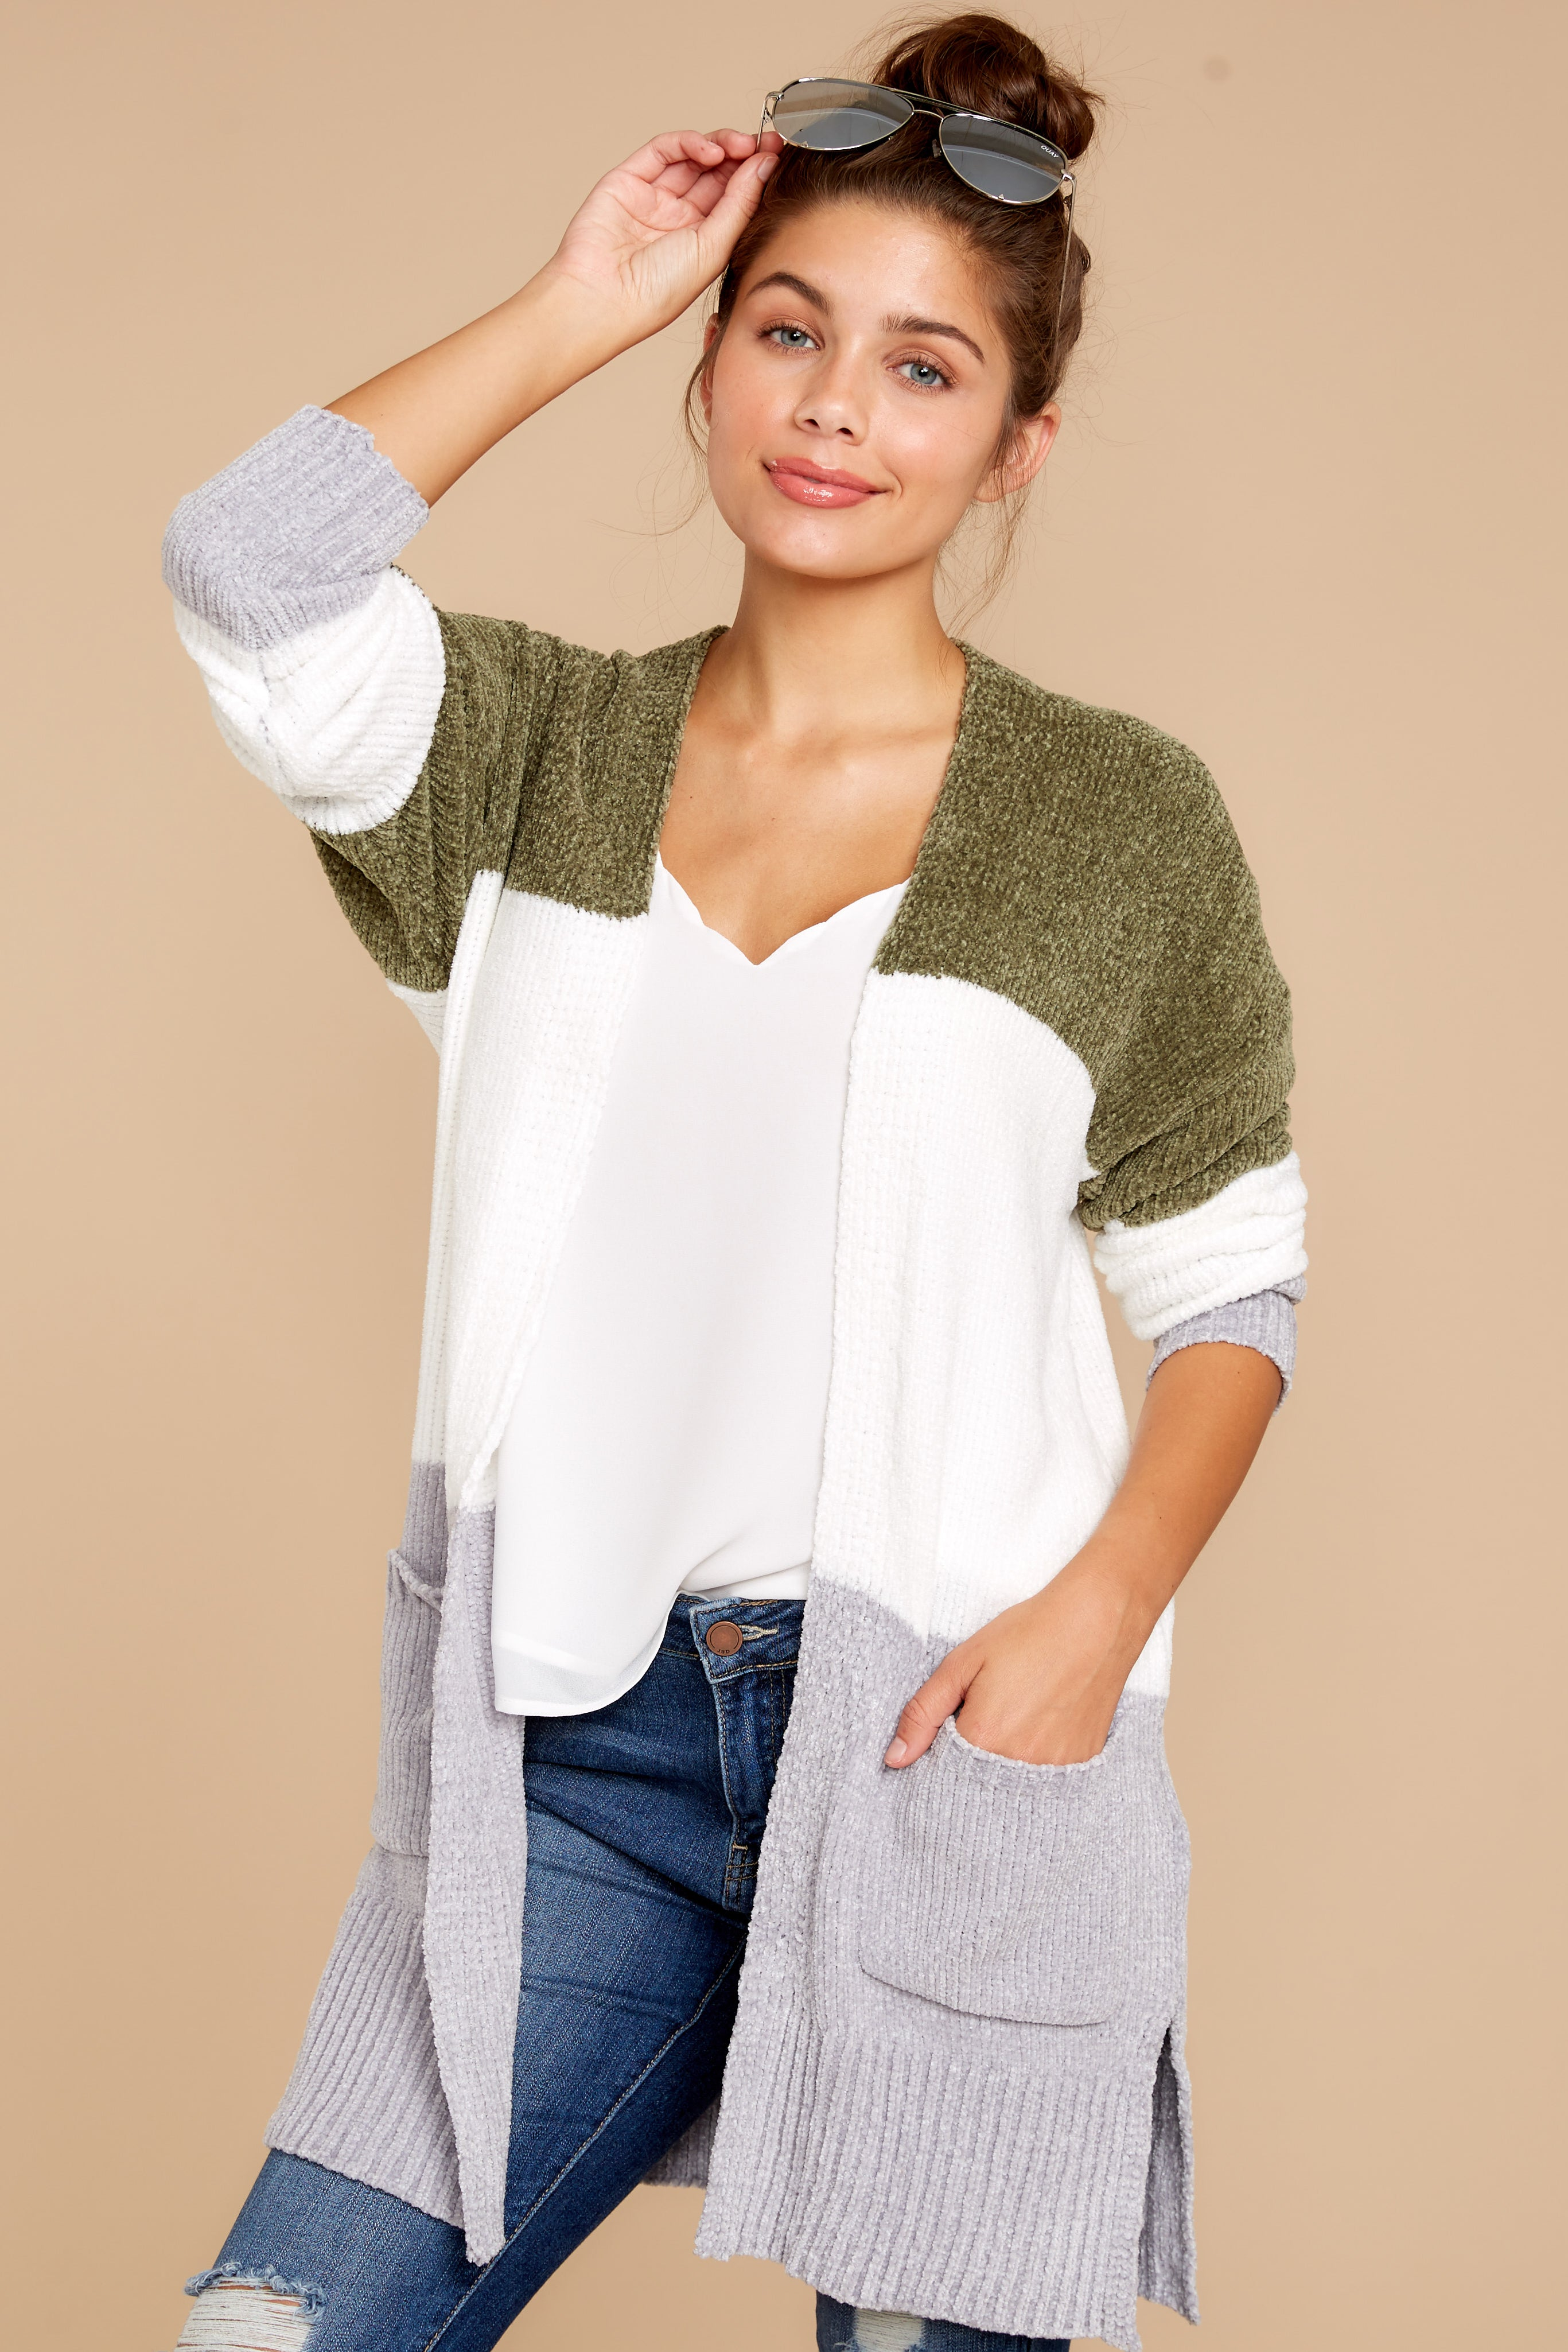 fc27c025c2 Sassy Olive Color Block Cardigan - Oversized Knit Cardi - Top ...